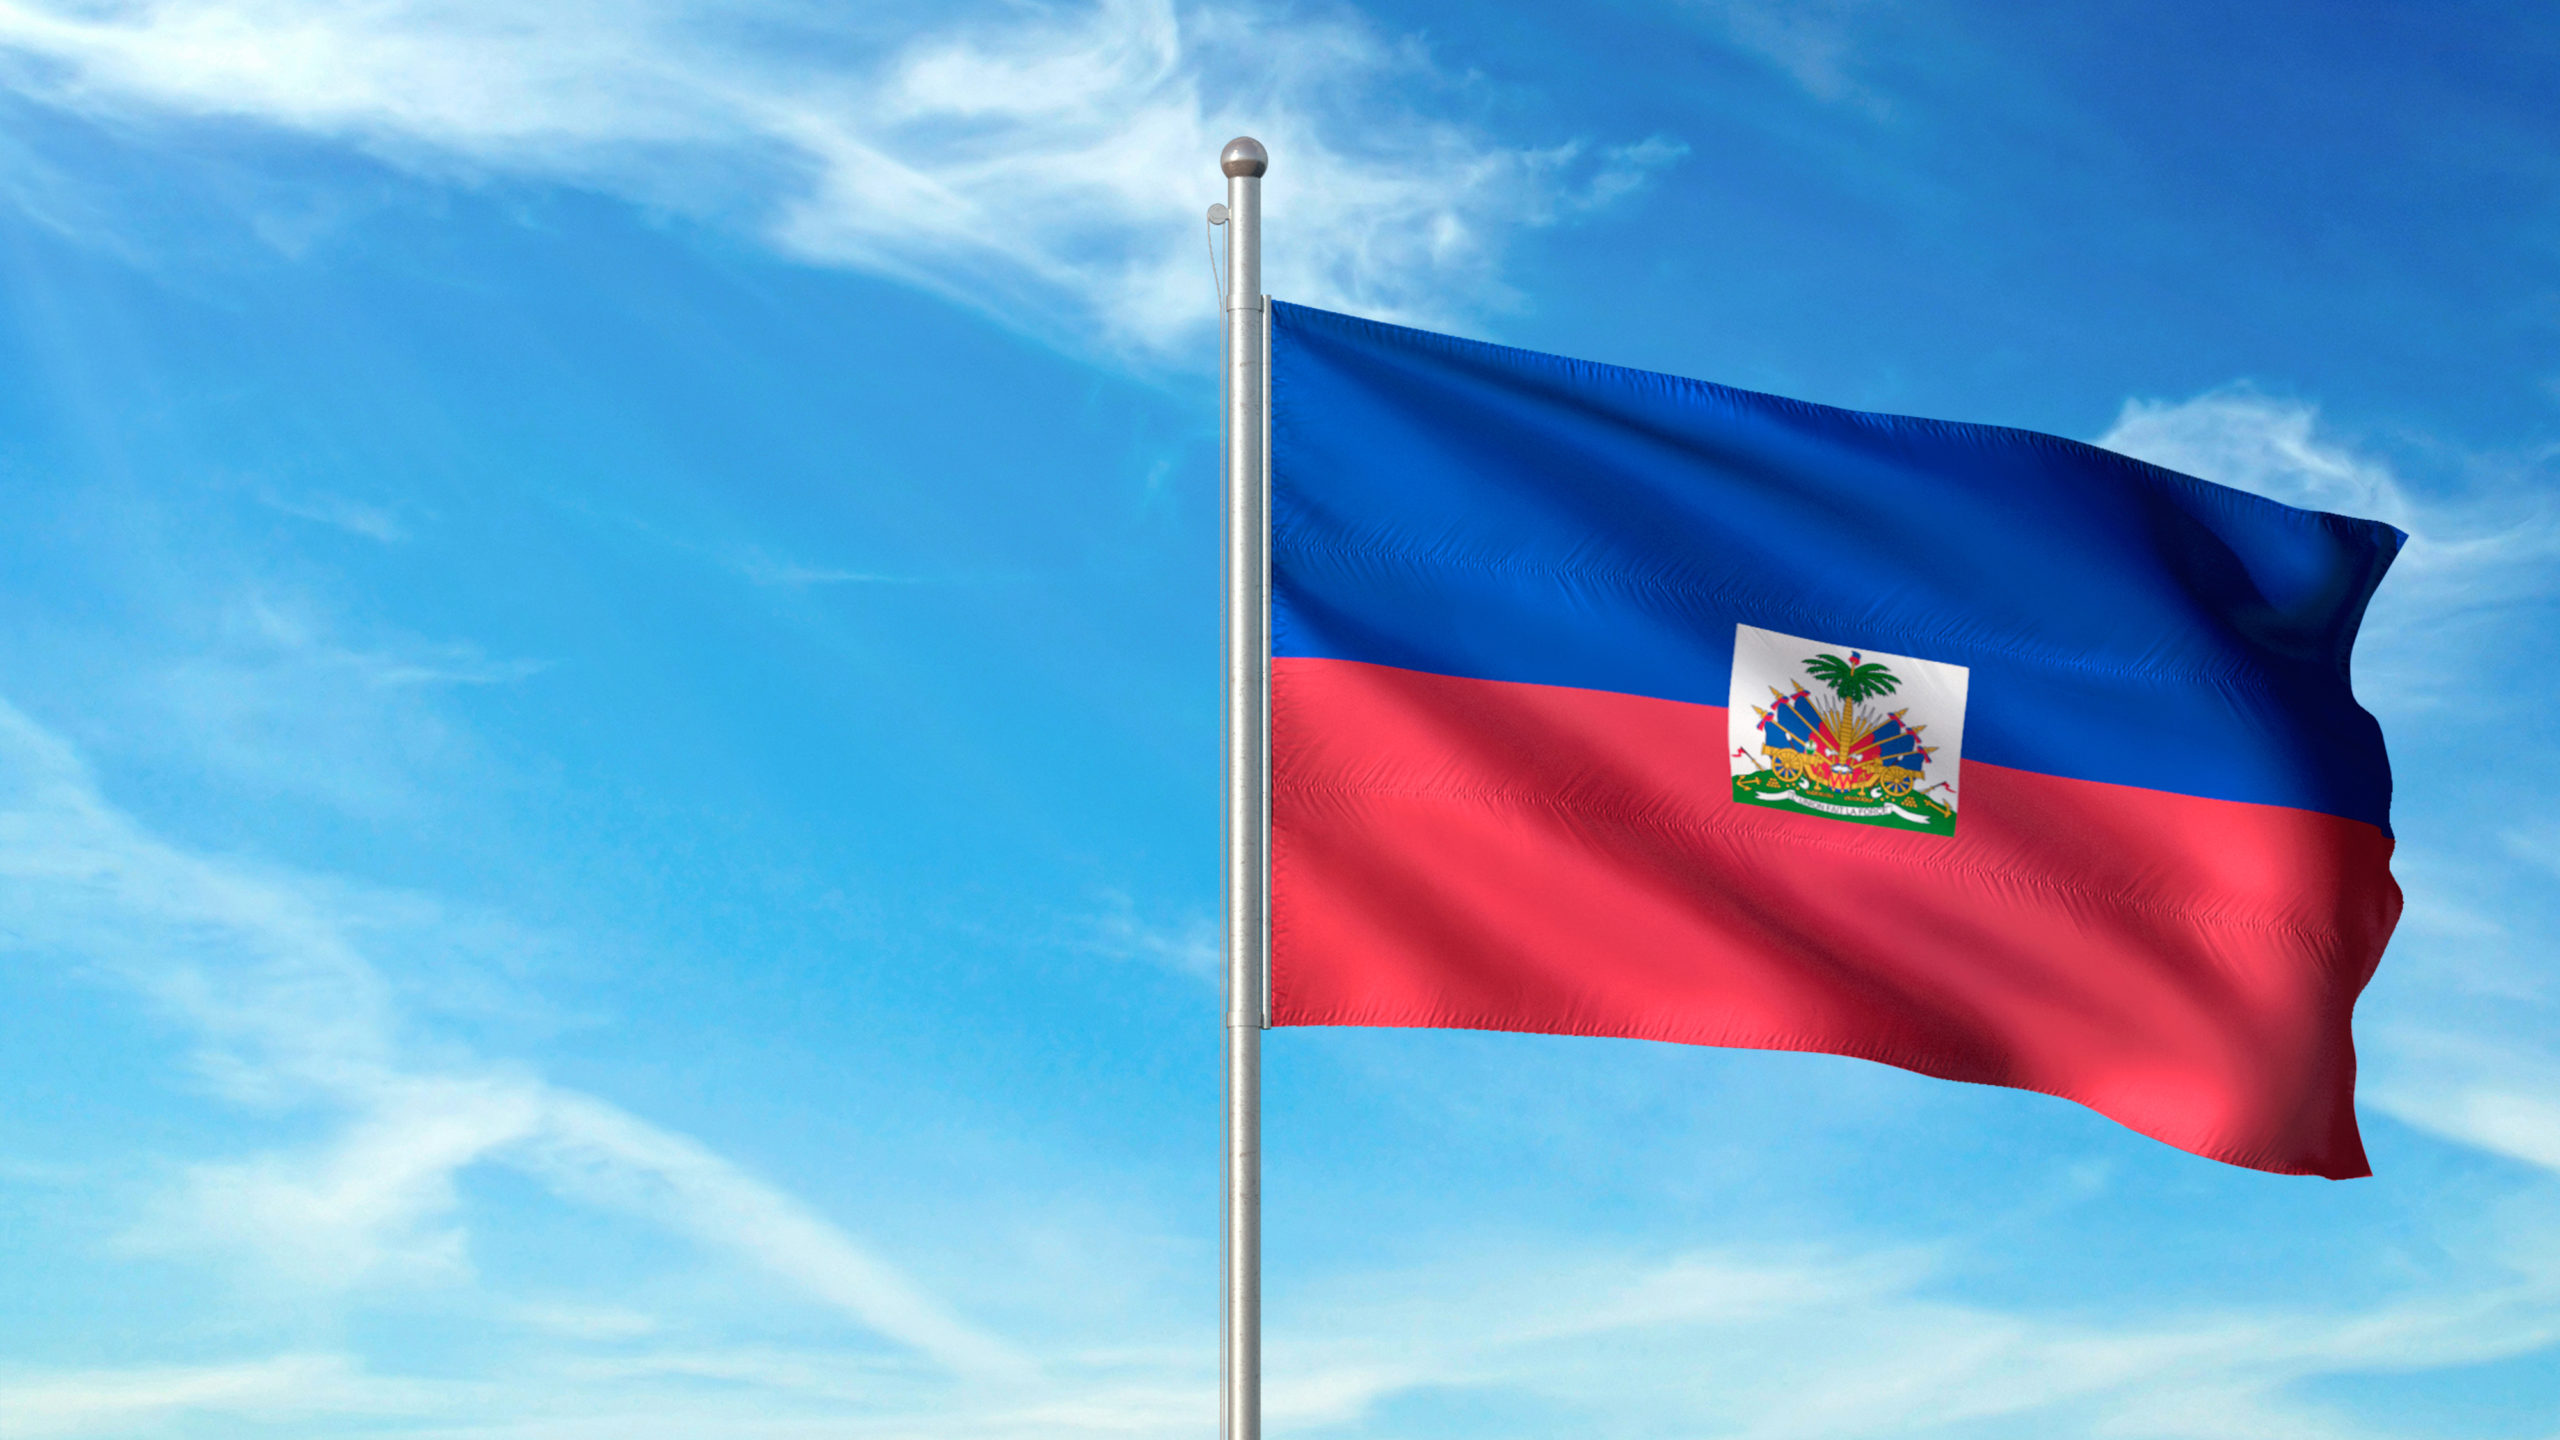 Haiti flag on flagpole waving cloudy sky background realistic 3d illustration with copy space